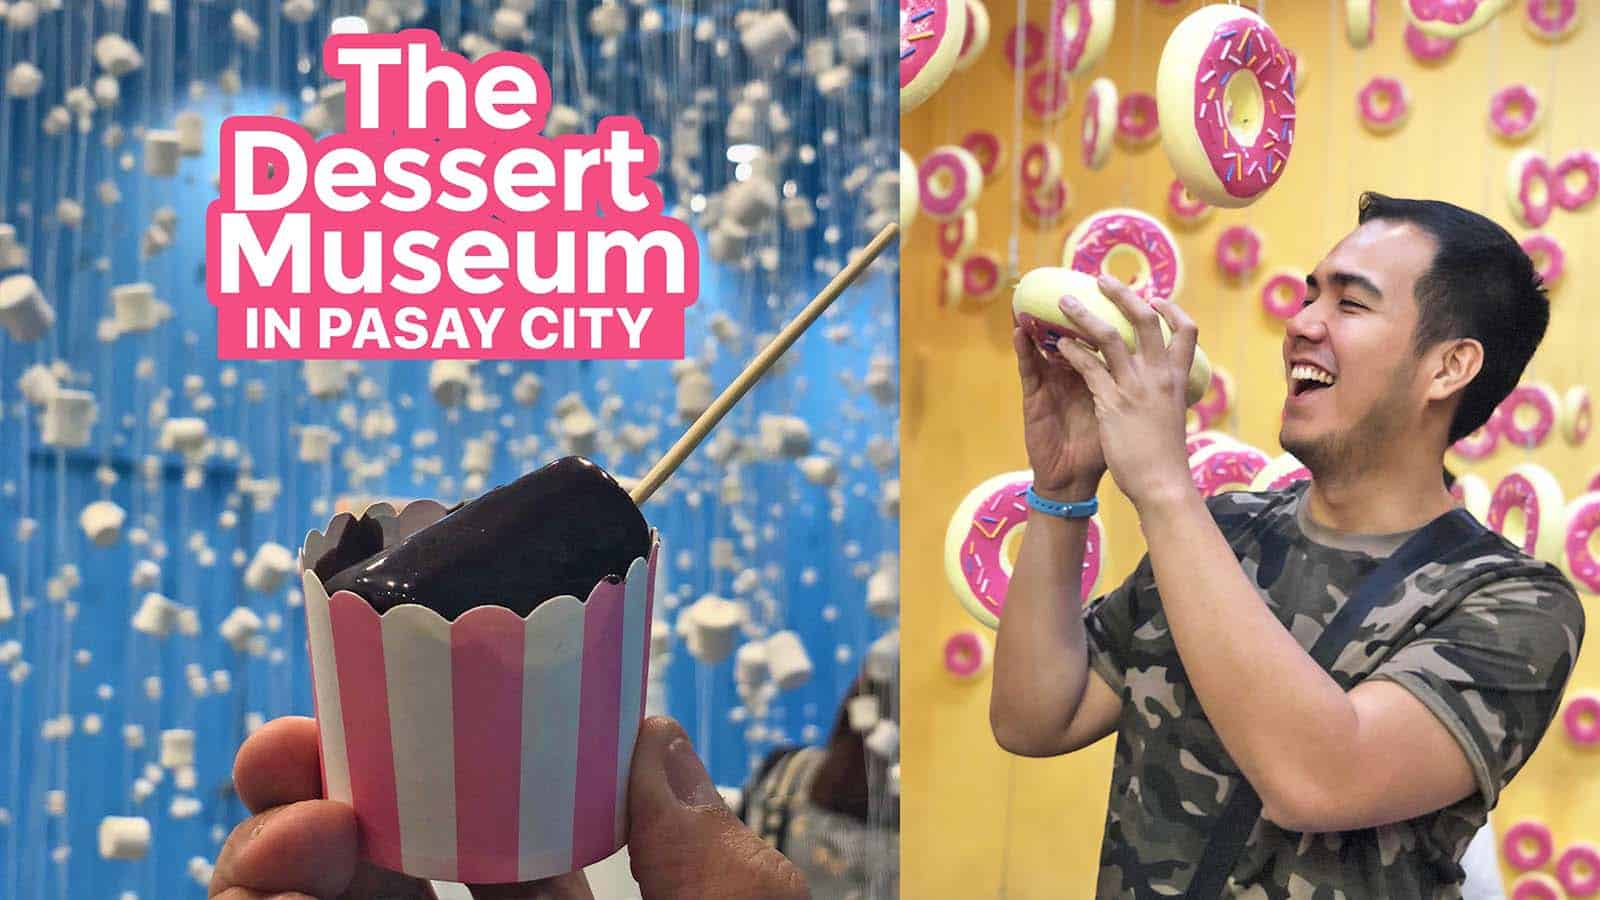 THE DESSERT MUSEUM MANILA: What to Expect